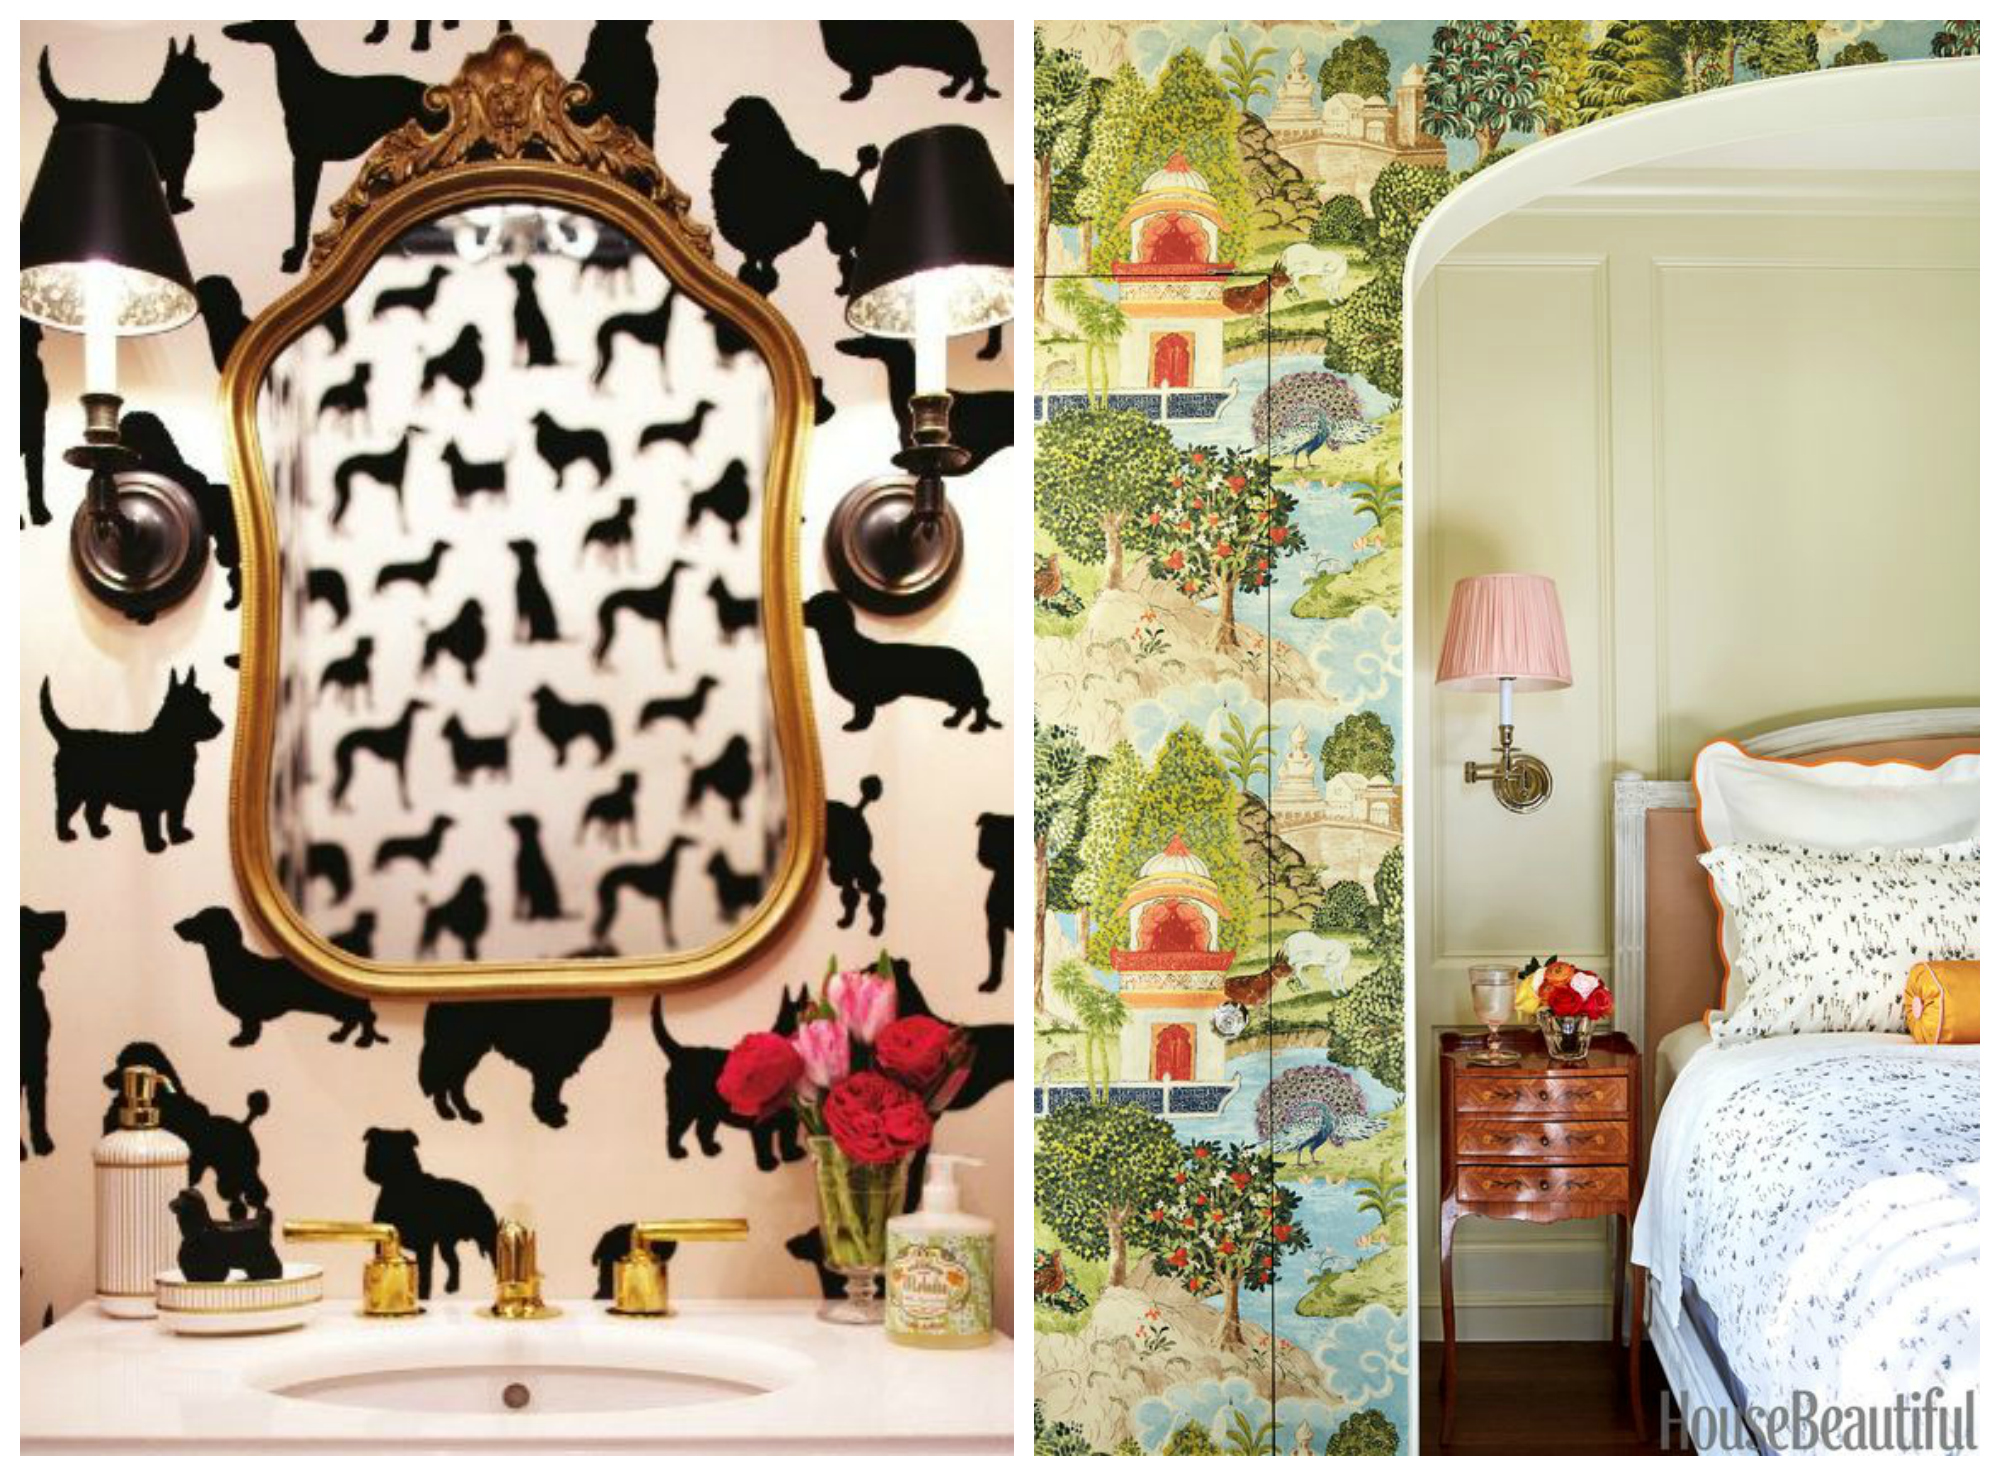 Left: Everyone needs a powder room with dog wallpaper, in my opinion.